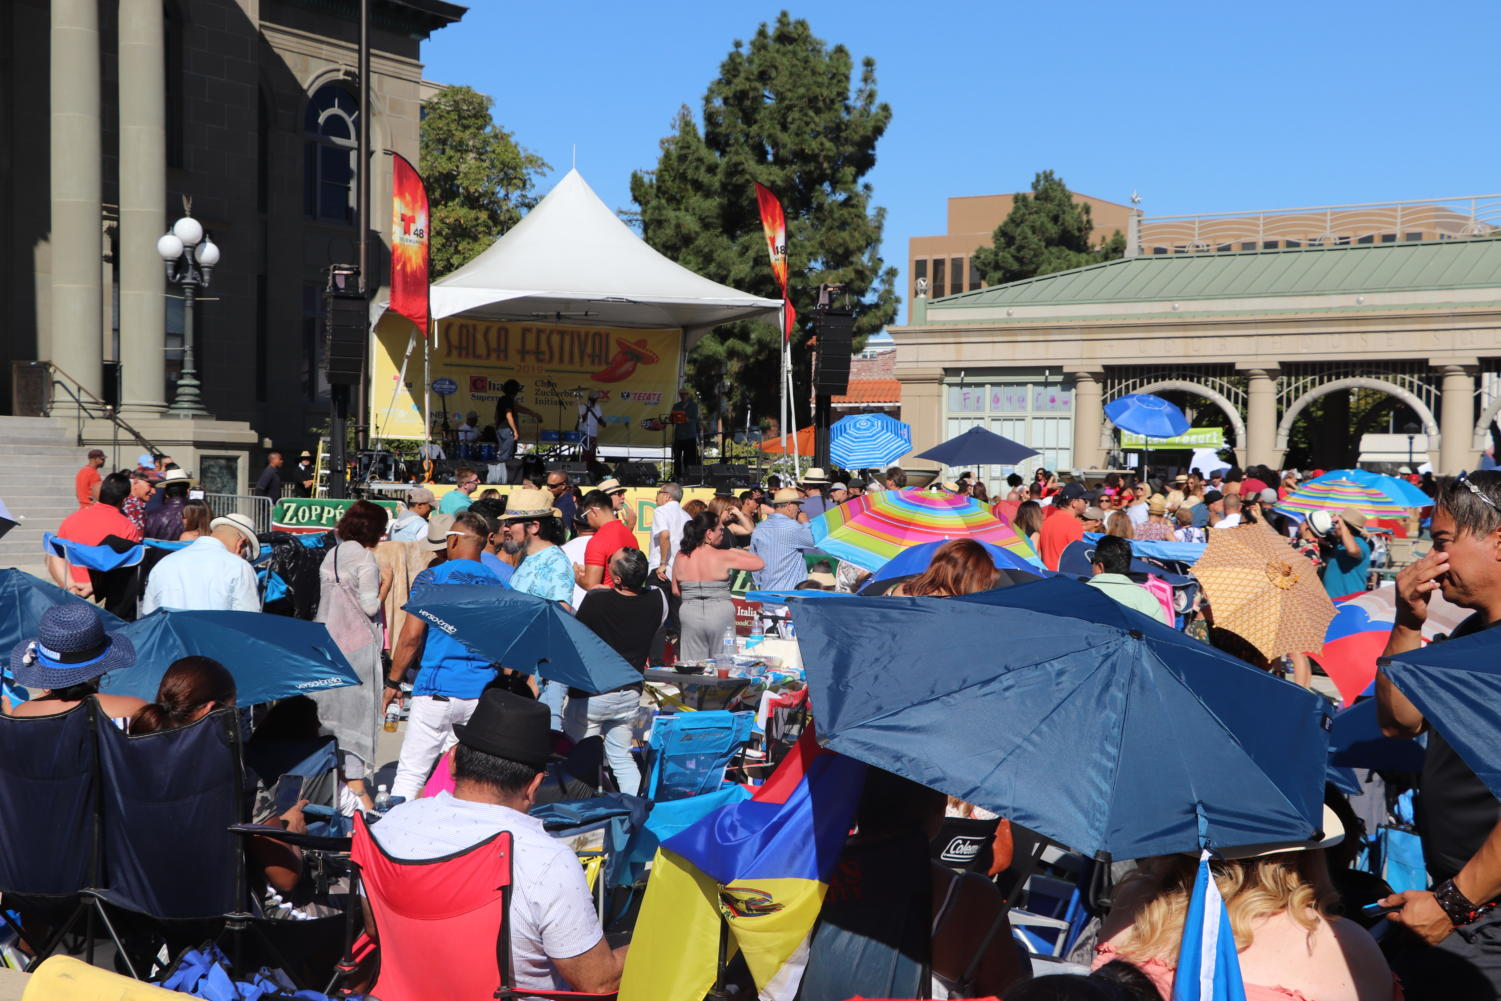 People came from across the Bay Area to attend Redwood City's Salsa Festival.